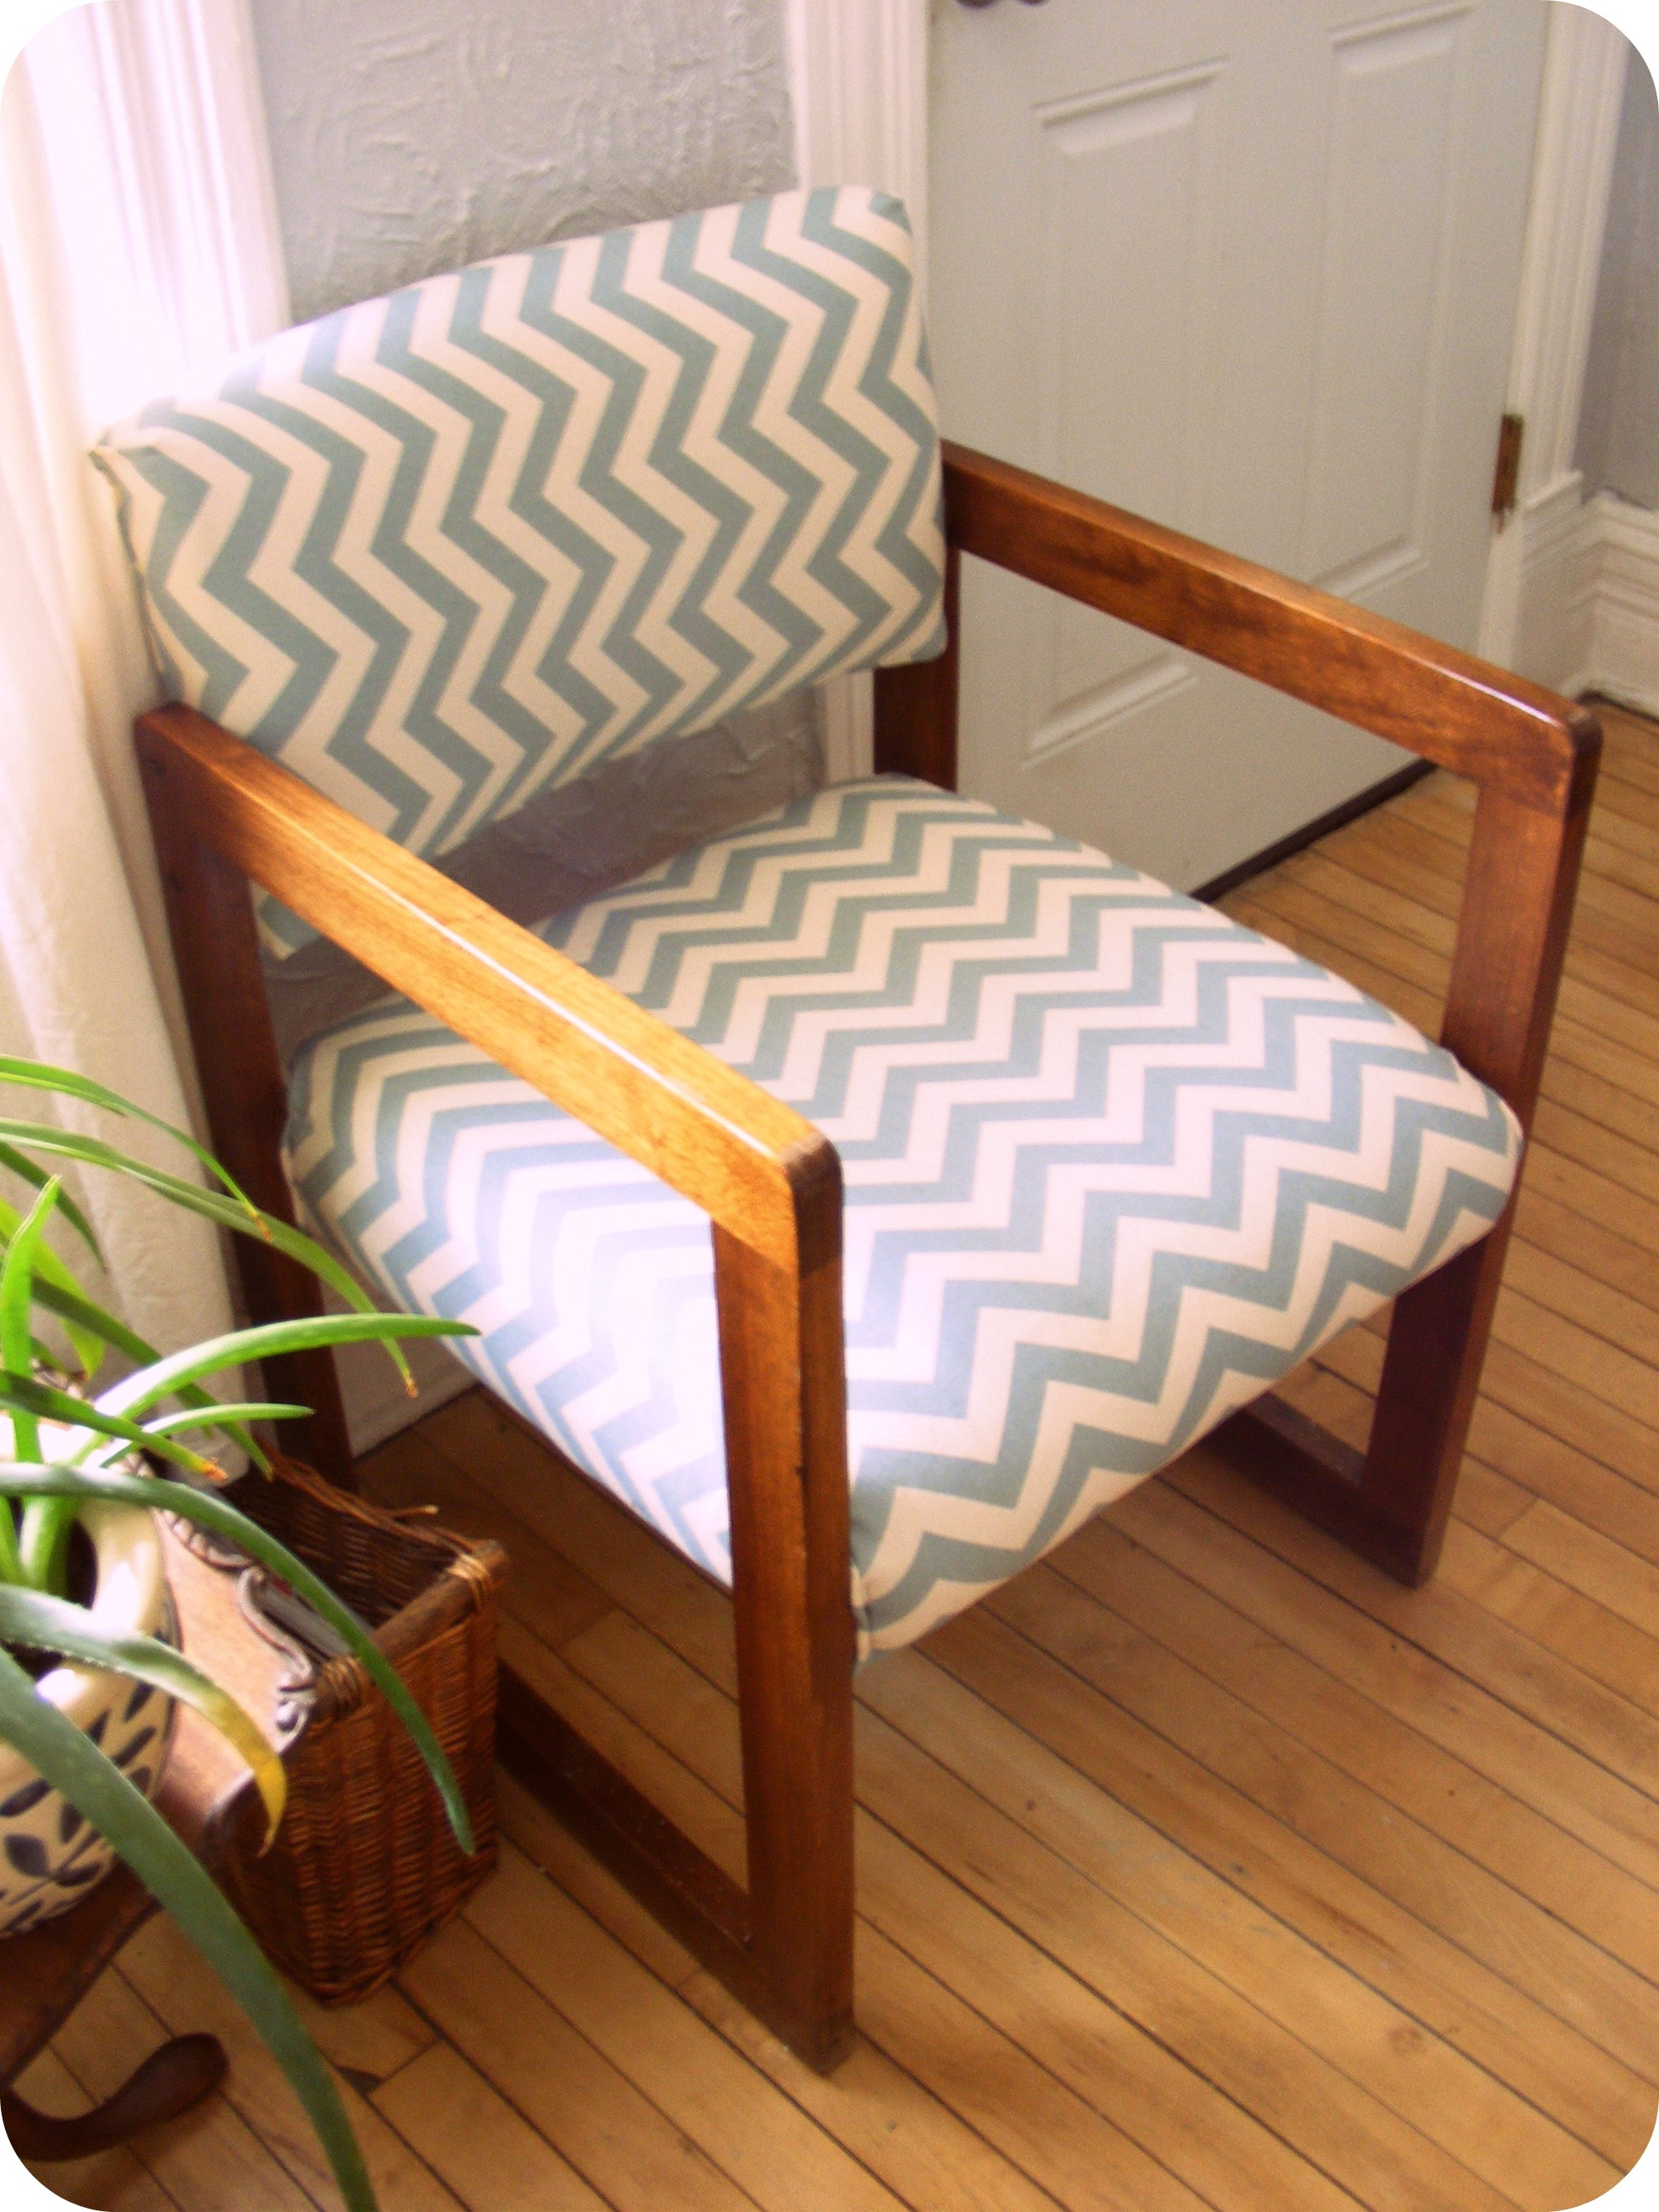 Modern Chair Cushions Stripped Pattern (Image 9 of 11)